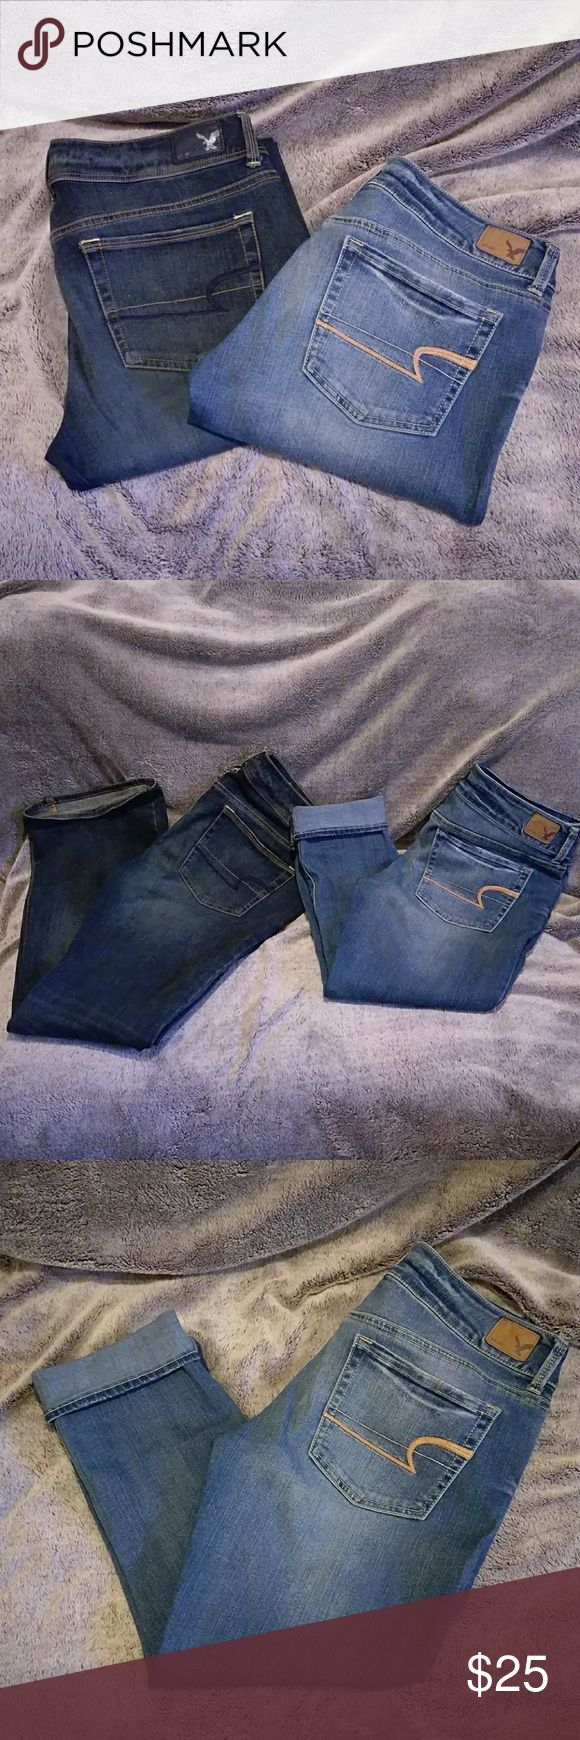 🌼American Eagle Denim Bundle🌼 EUC, dark is a super stretch 'Kick Boot' style size 8 Regular, light color 'Artist Crop' size 8. Pretty loved but have plenty of life left. Washed inside out and always hang dry. Great denim just can't fit anymore! American Eagle Outfitters Jeans